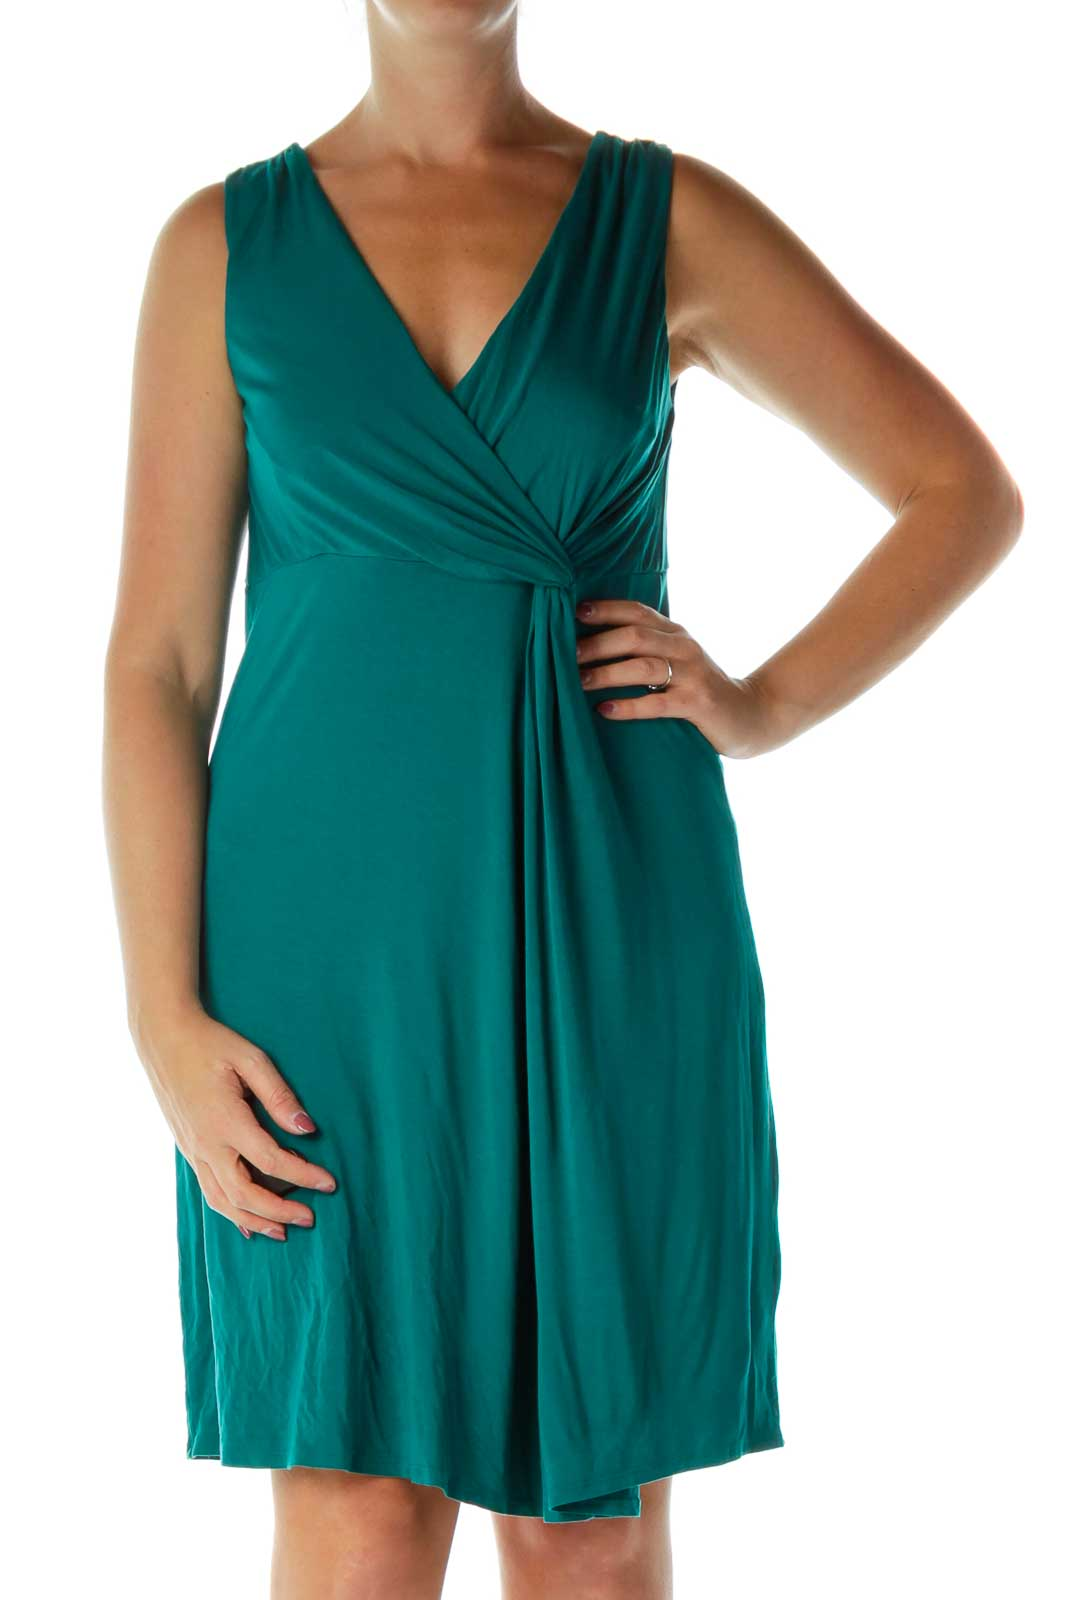 Teal Blue Day Dress Front